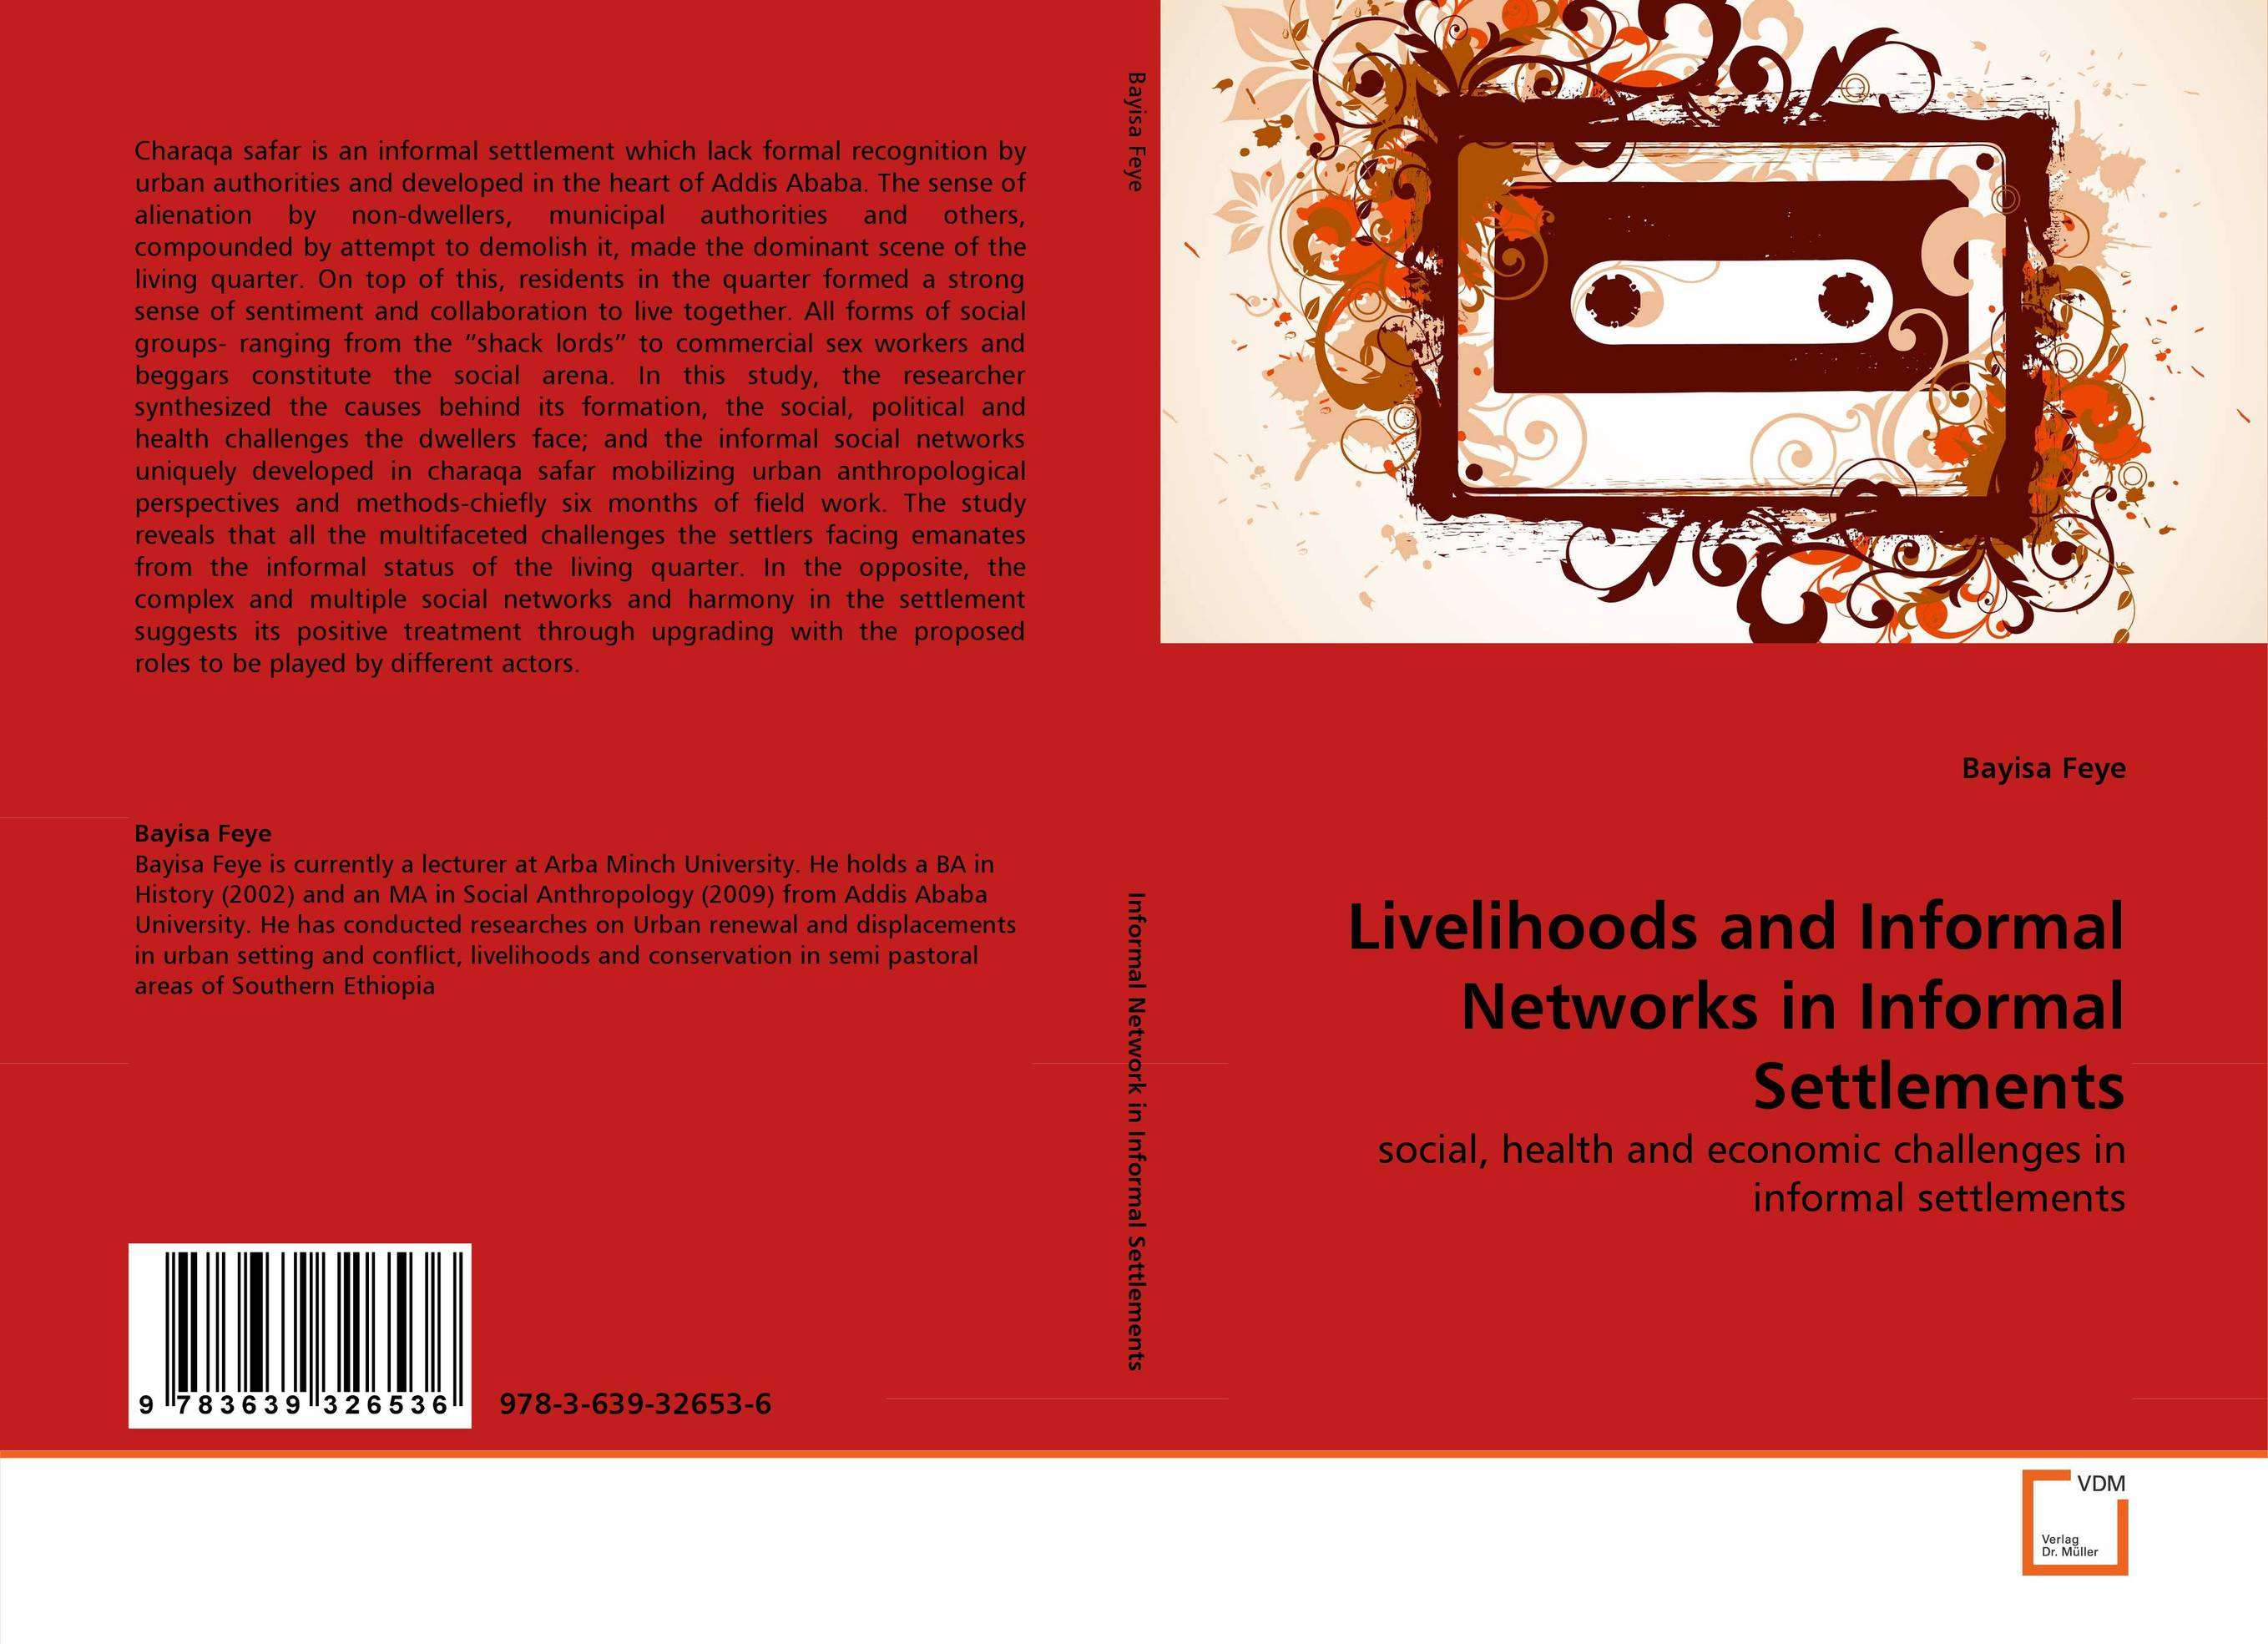 Livelihoods and Informal Networks in Informal Settlements sense and sensibility